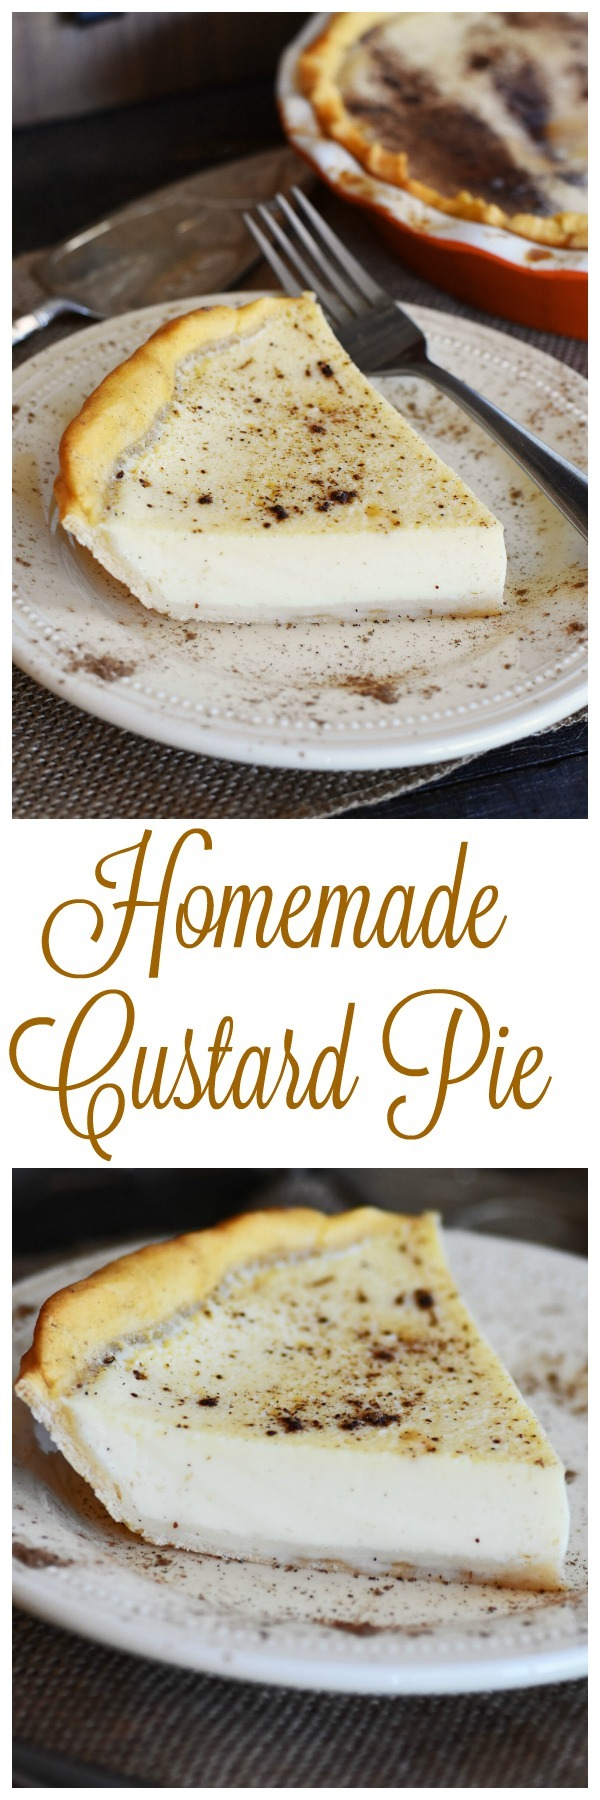 homemade-custard-pie1